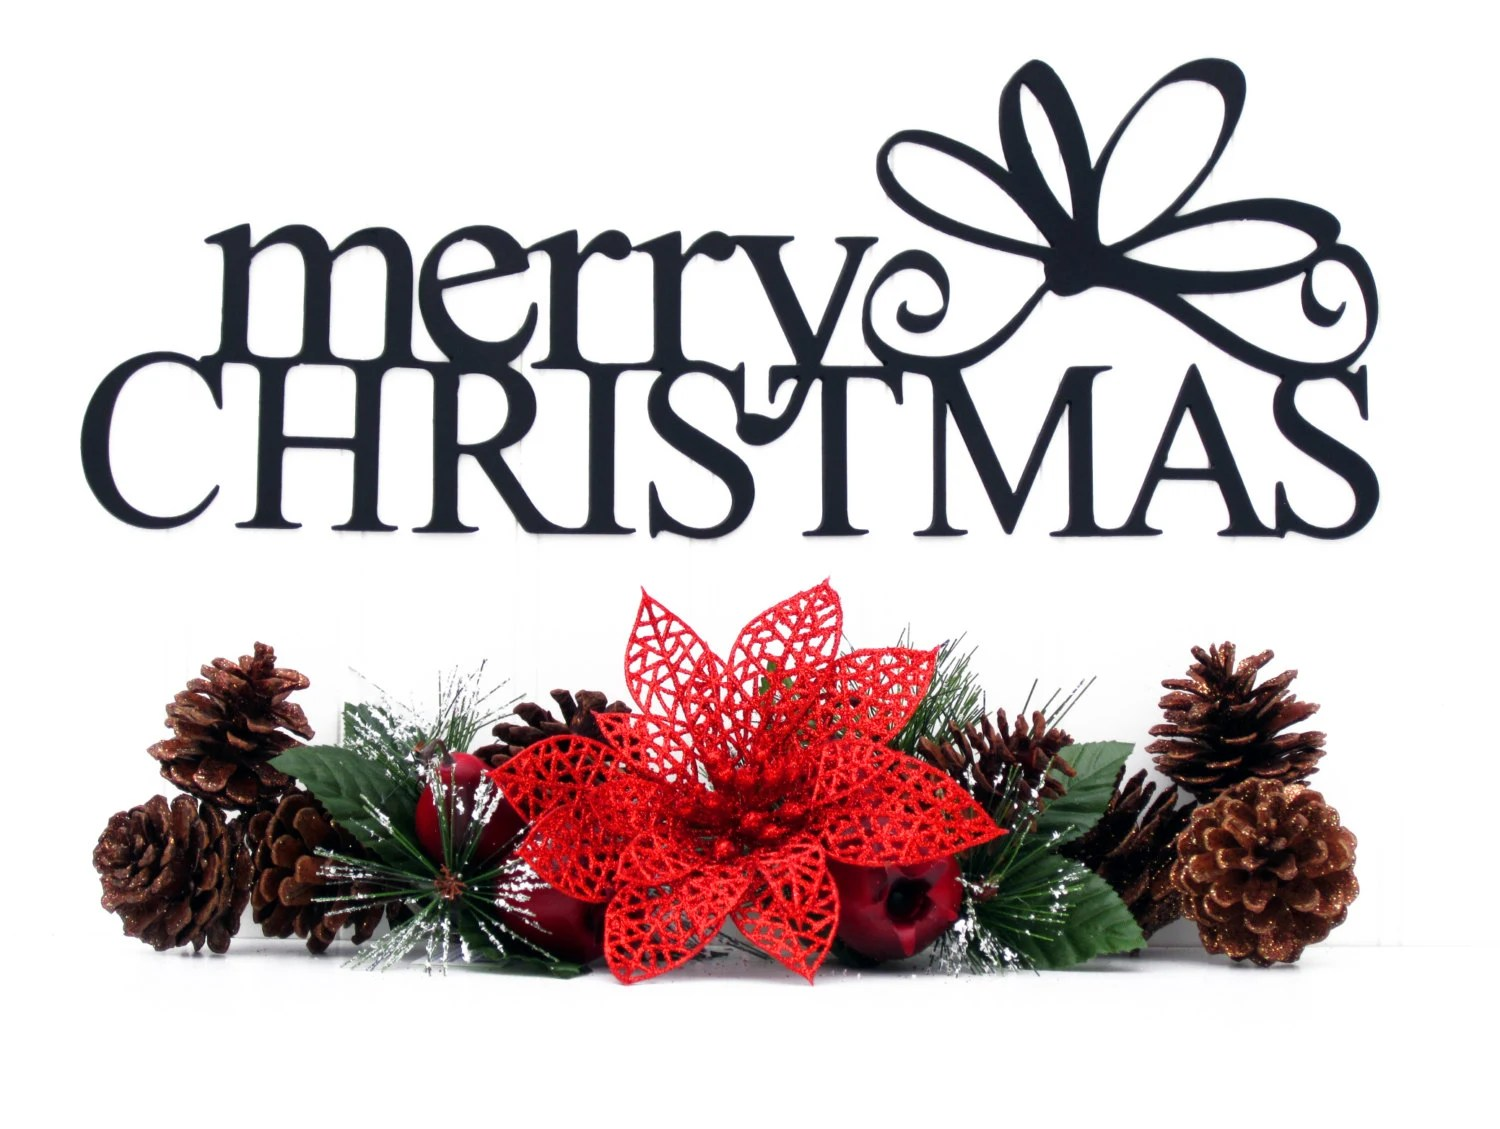 Merry Christmas Metal Sign With Bow Black 15x5.5 Xmas